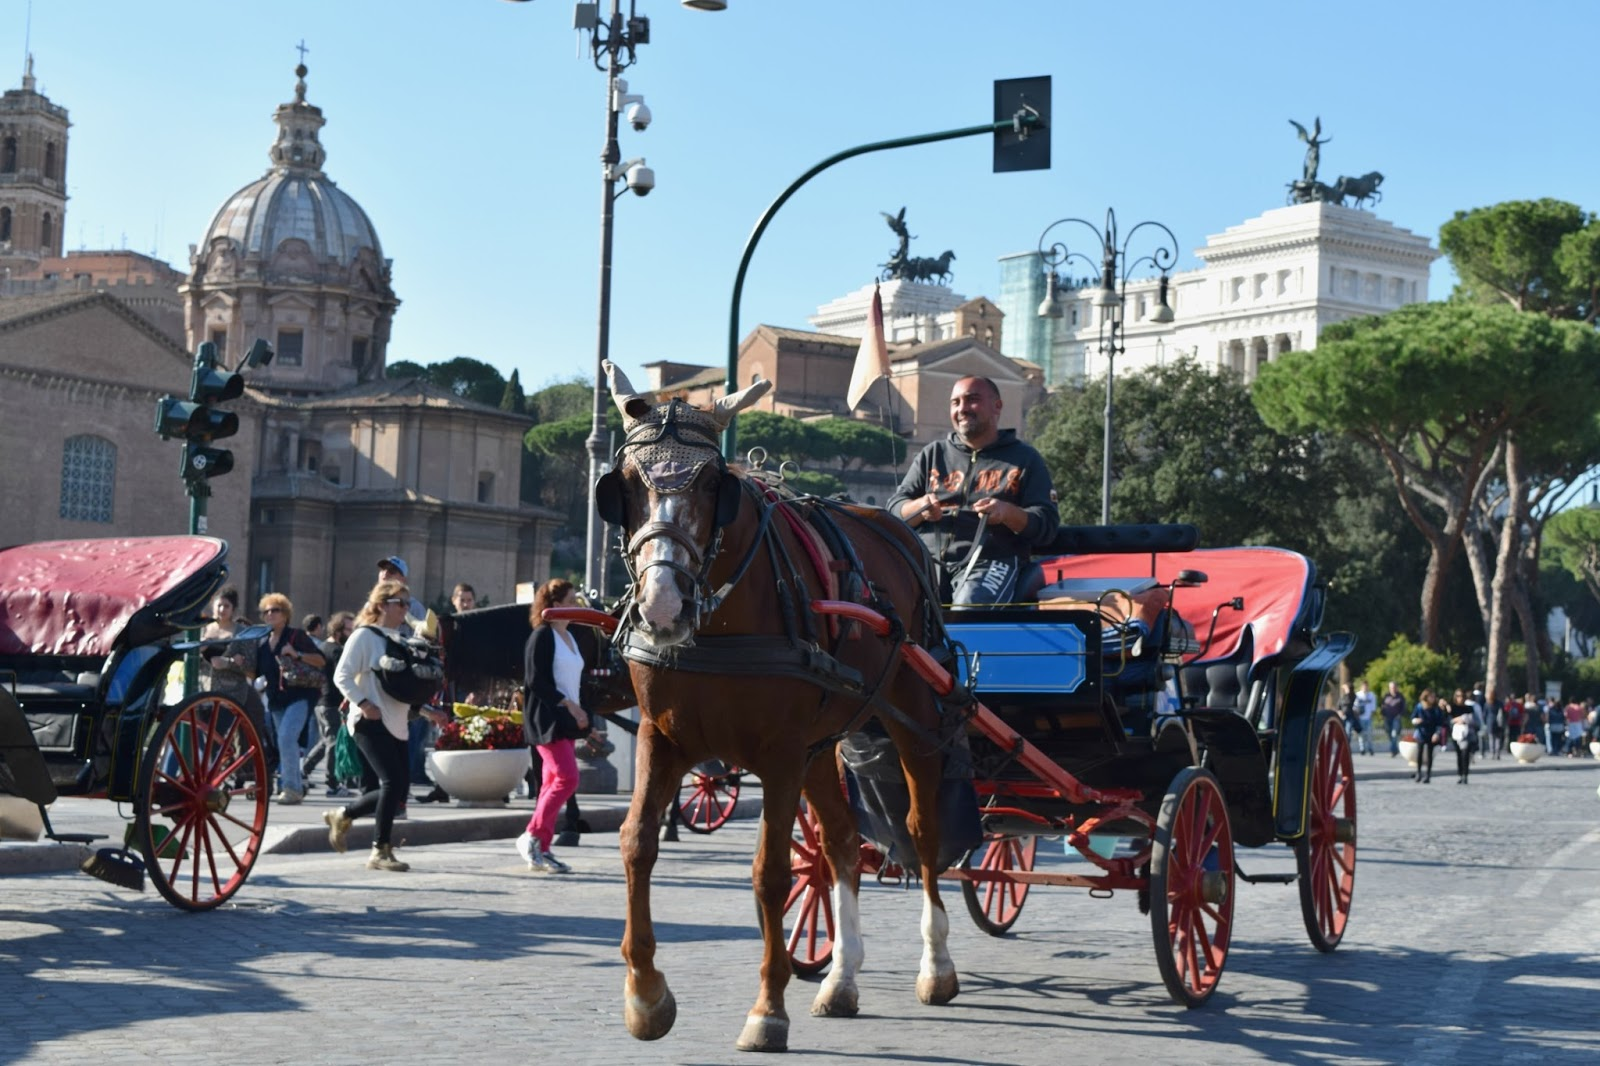 horse carriage tourism in rome